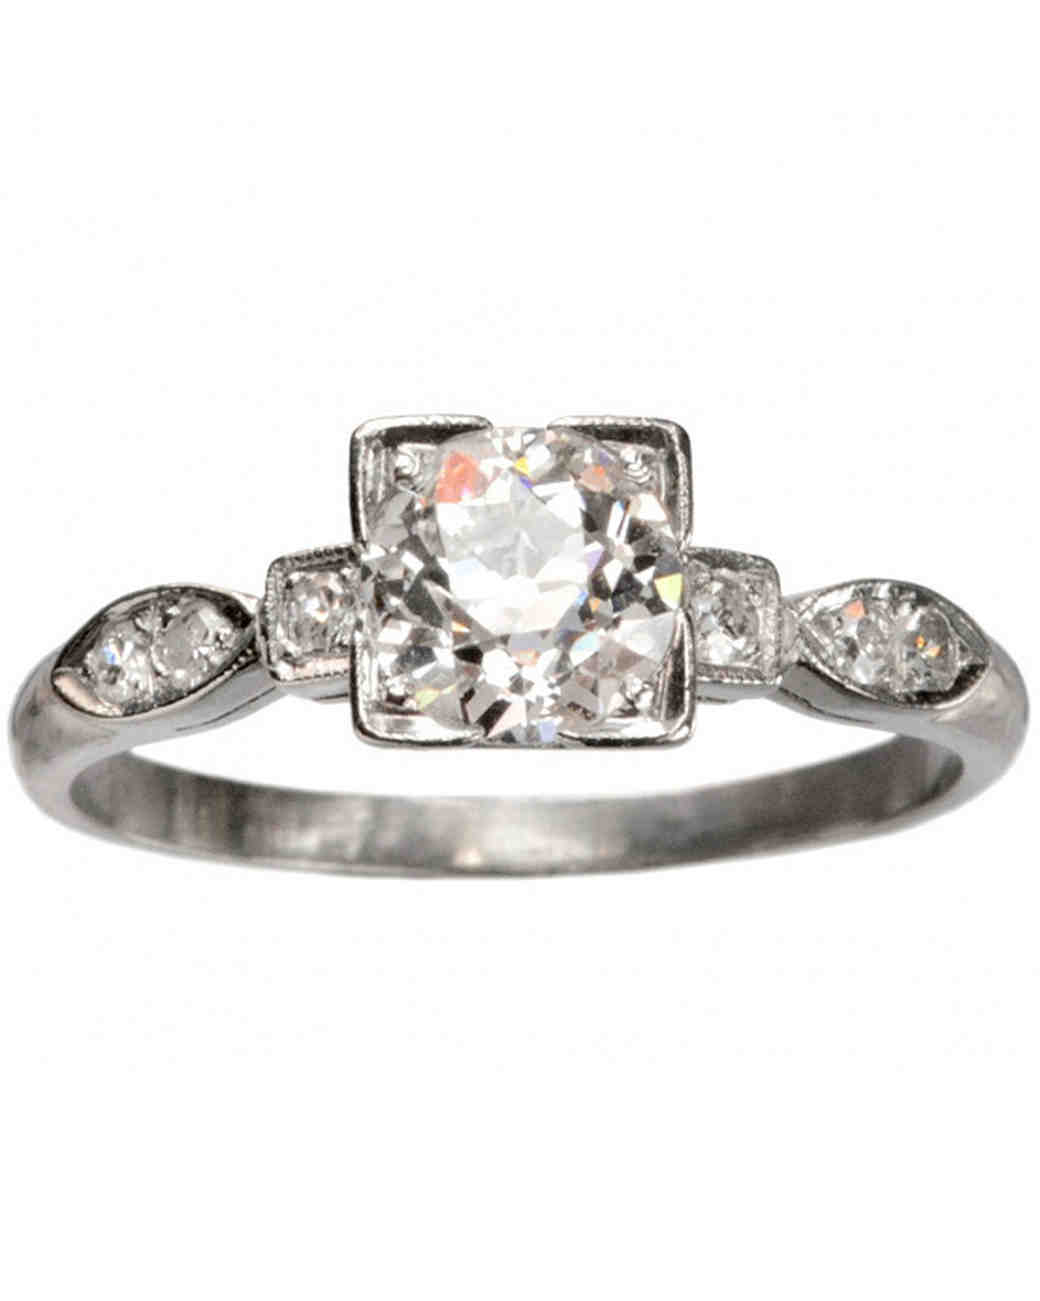 Antique 1930s Art Deco Engagement Ring